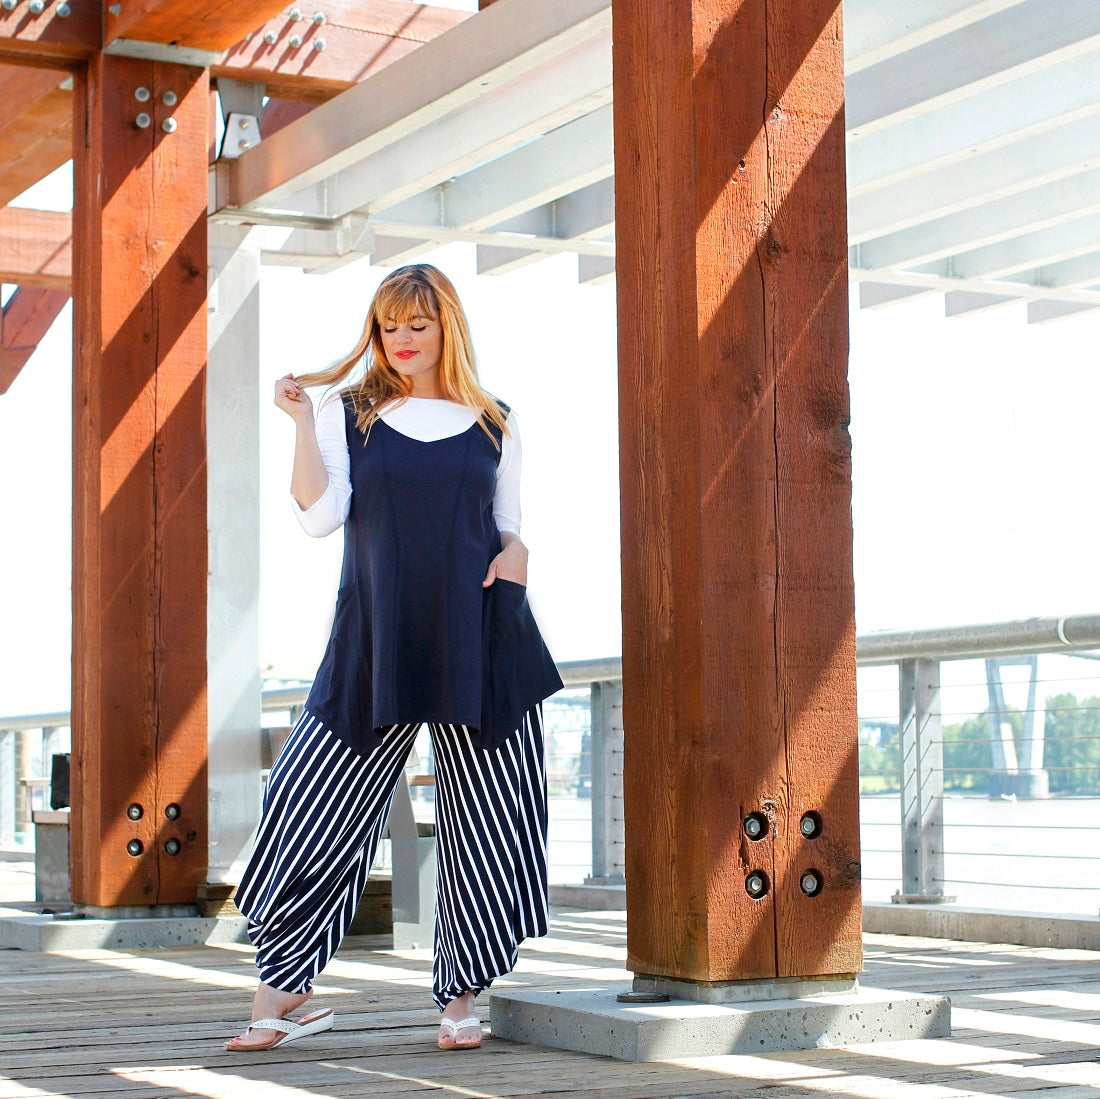 Jennifer Pistor wears a Diane Kennedy outfit of the Add Pockets Tunic, Perfect Tee and Smarty Pants